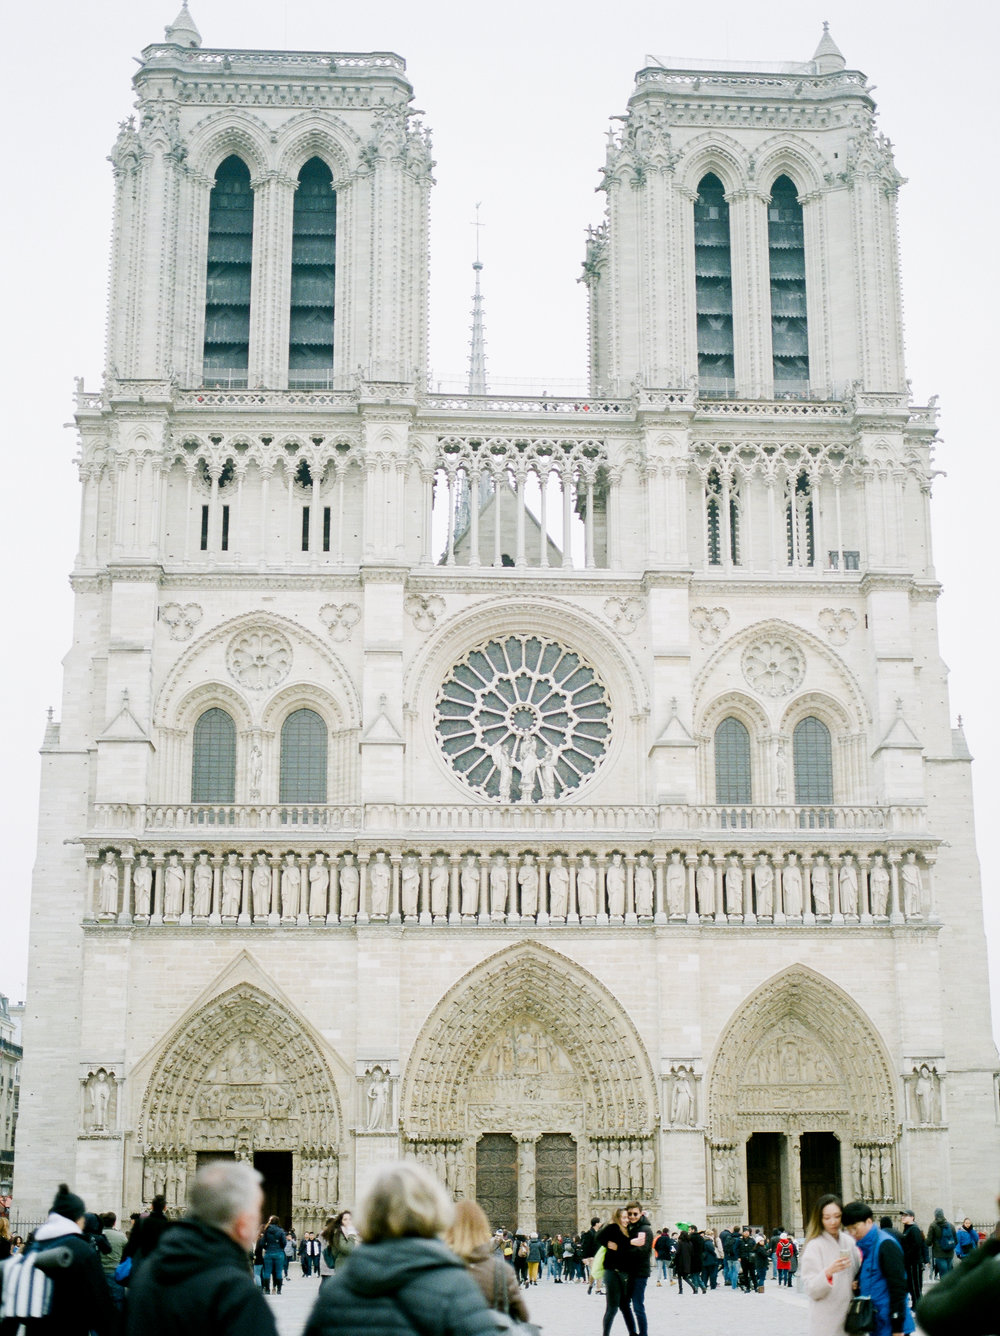 the-famous-cathedral-de-notre-dame-de-paris.jpg